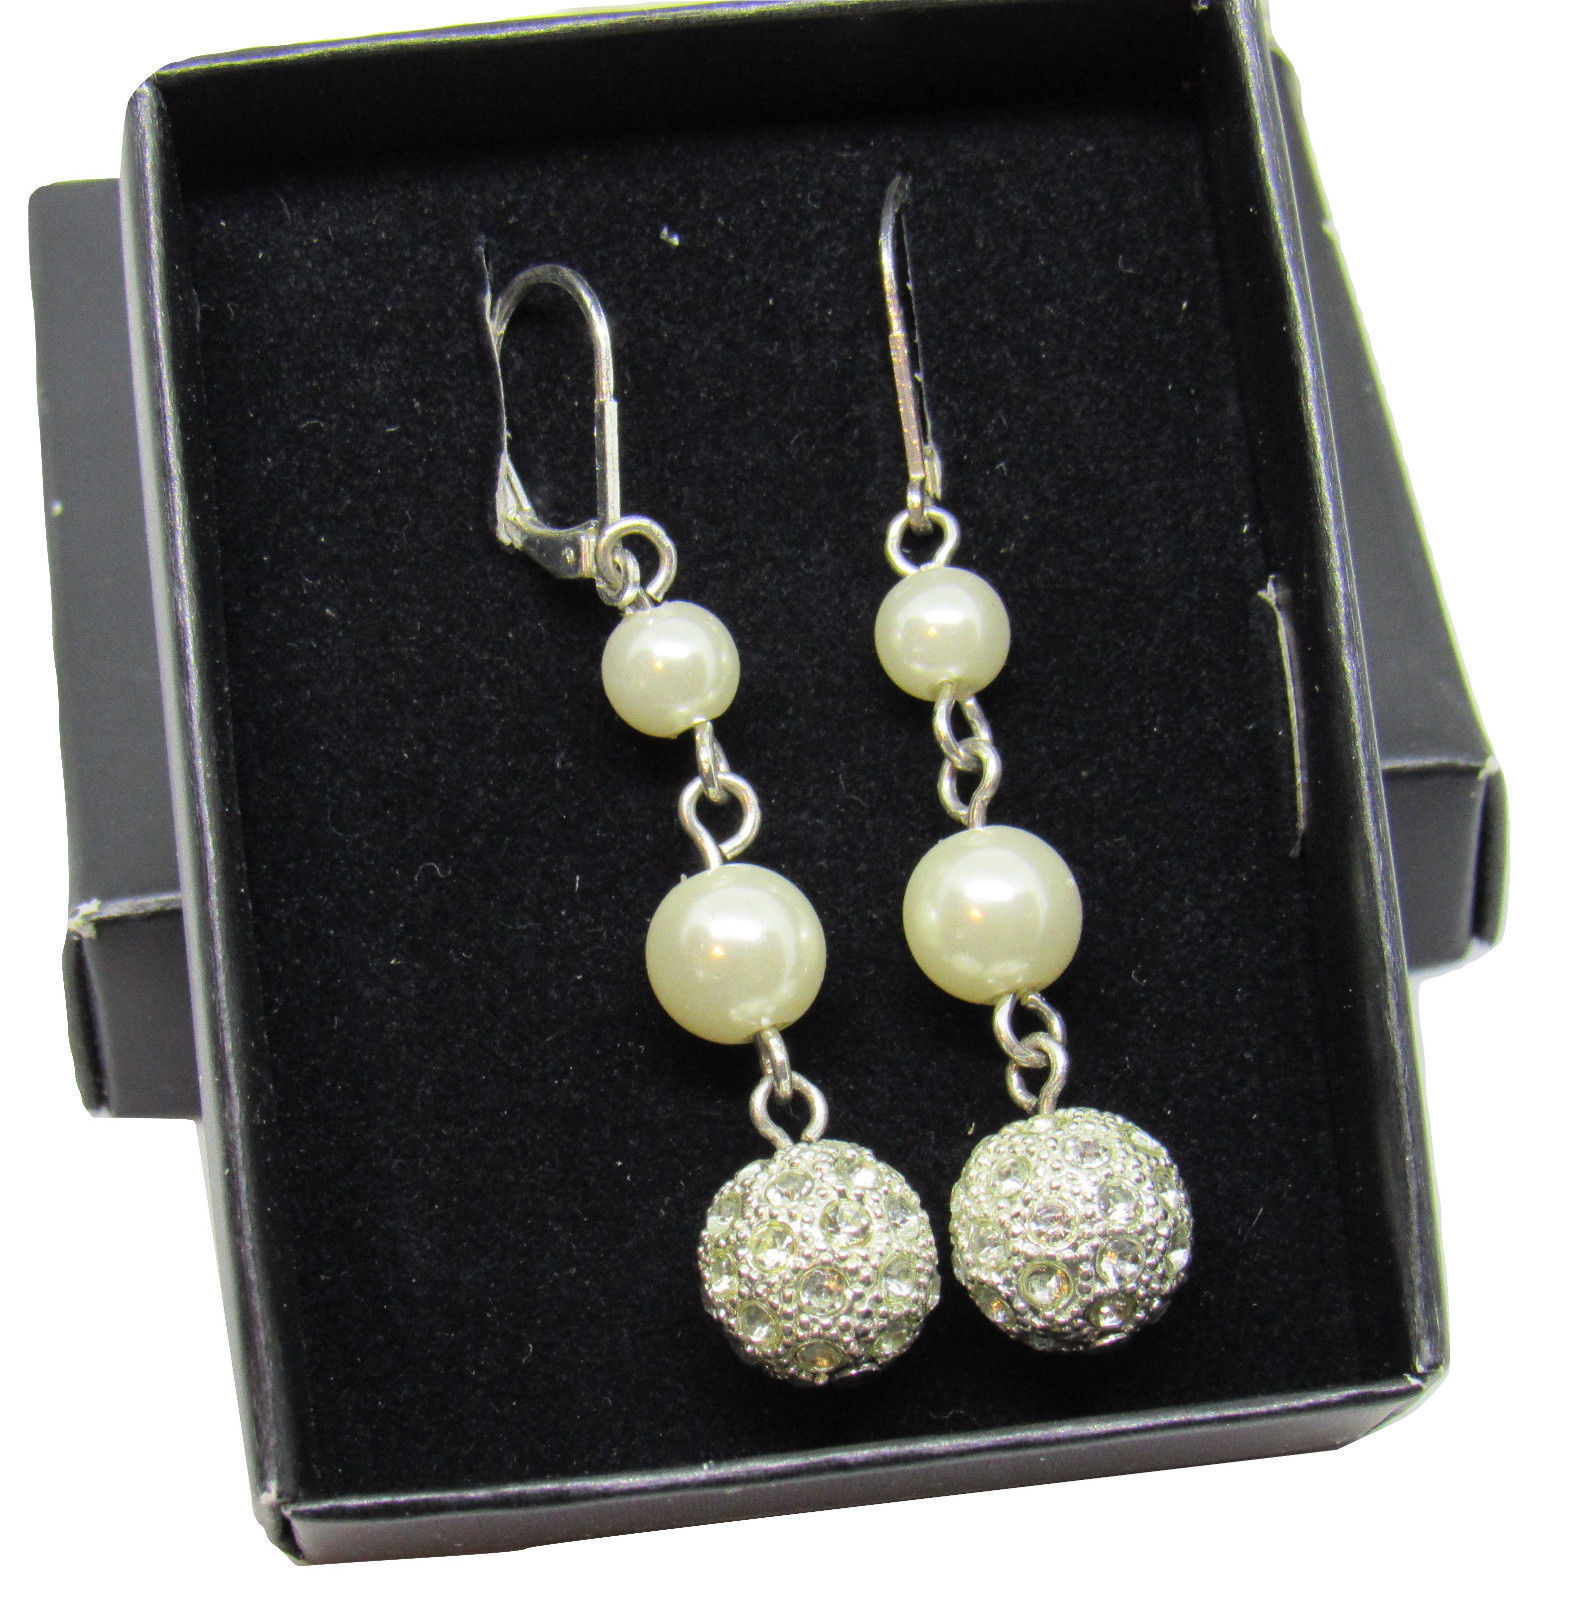 Avon 2011 President's Club Pearlesque Earrings Dangle Leverback image 1